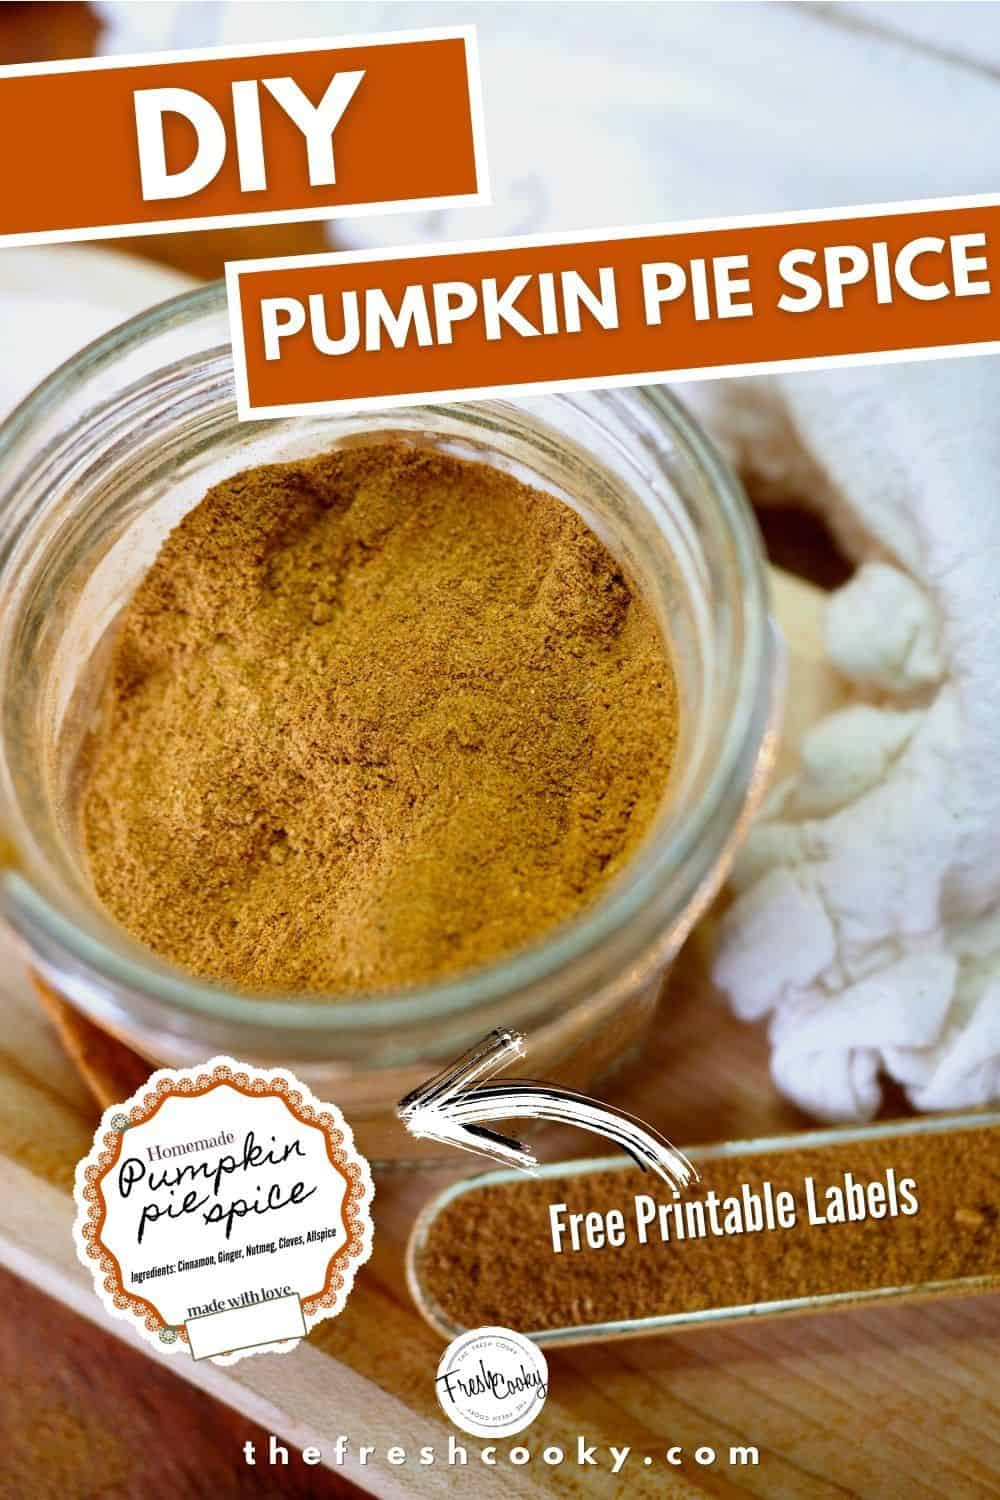 DIY Pumpkin Pie Spice mix for fall baking and gifting!  Plus FREE printable labels with 4 designs to choose form. Makes great hostess gifts, neighbor and teacher gifts and are perfect to go in a gift basket. Recipe and labels via @thefreshcooky | #foodgifts #DIY #easyrecipe #cinnamon #ginger #allspice #cloves #nutmeg #fallbaking  via @thefreshcooky